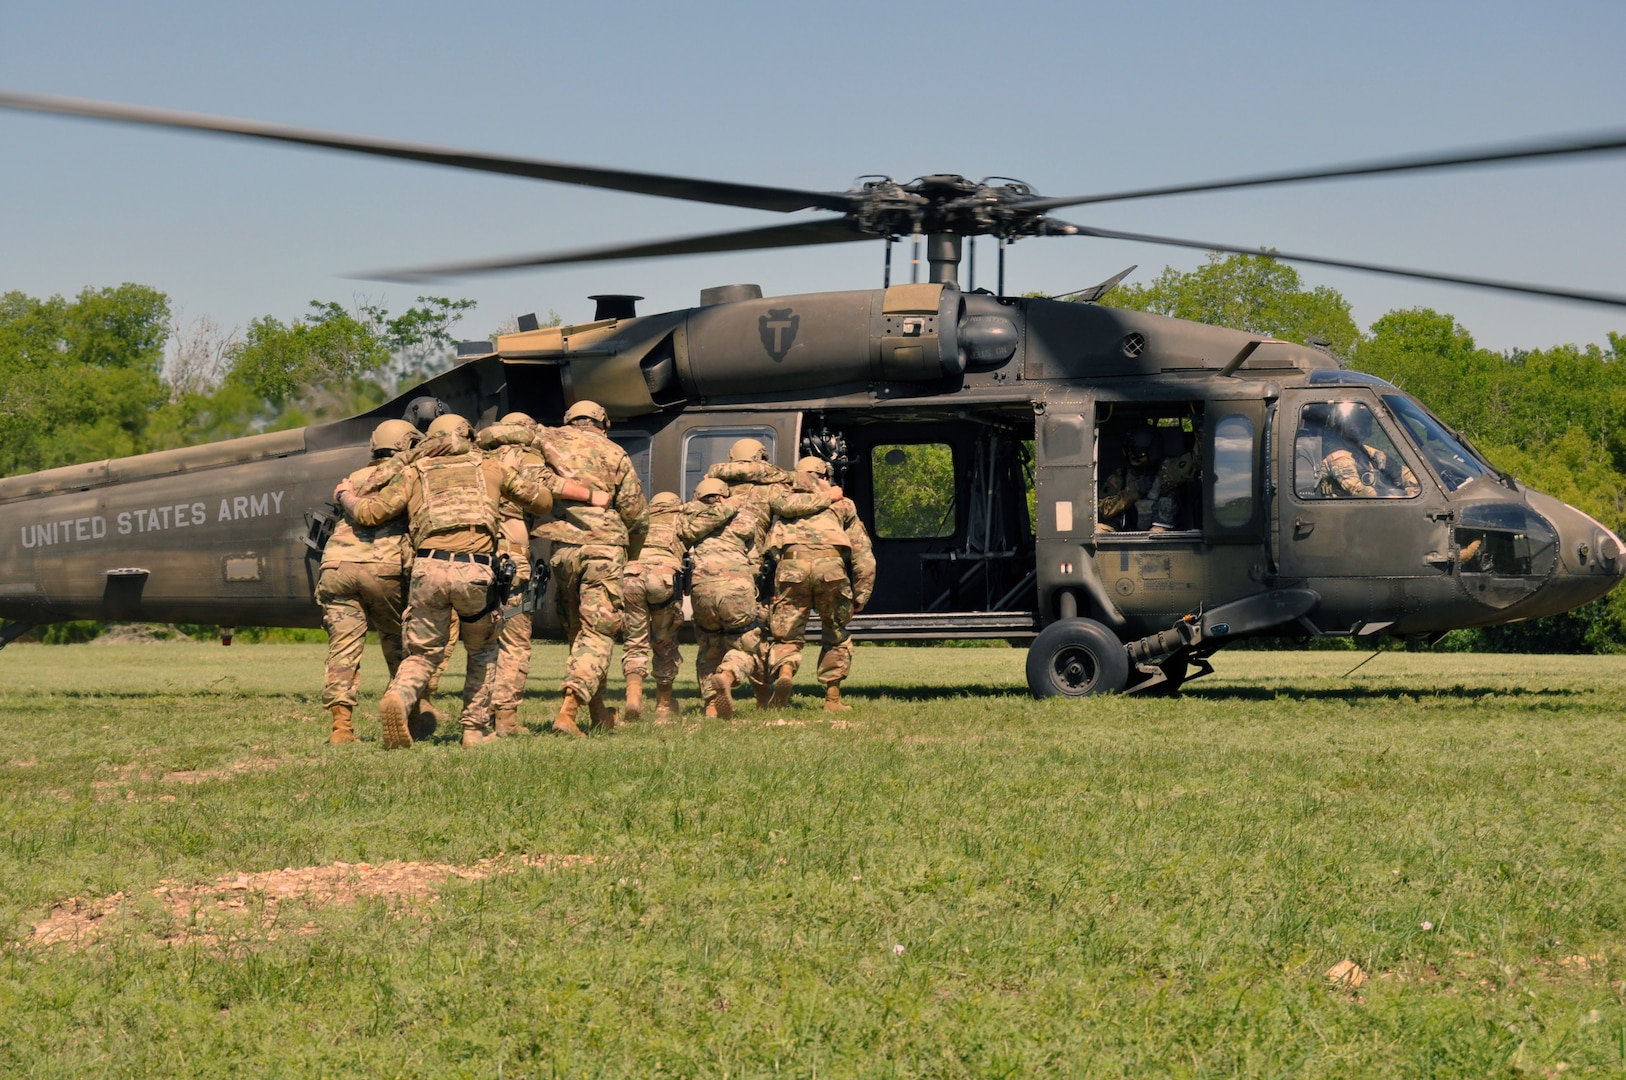 Airmen load simulated injured Airmen onto helicopter.